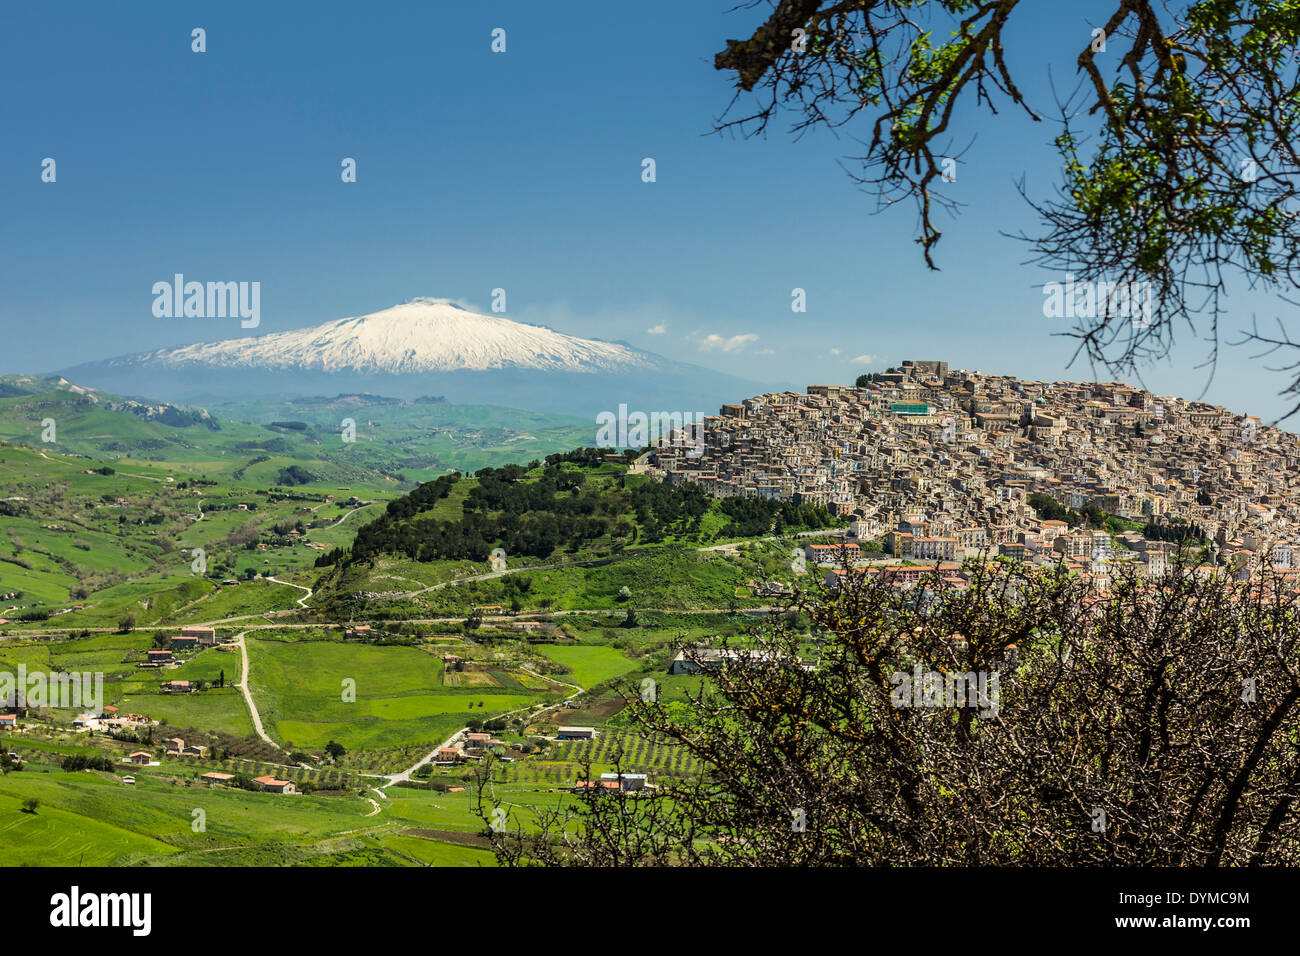 Hill town with backdrop of snowy volcano Mount Etna; Gangi was a common Mafia last name; Gangi, Palermo Province, Sicily, Italy - Stock Image